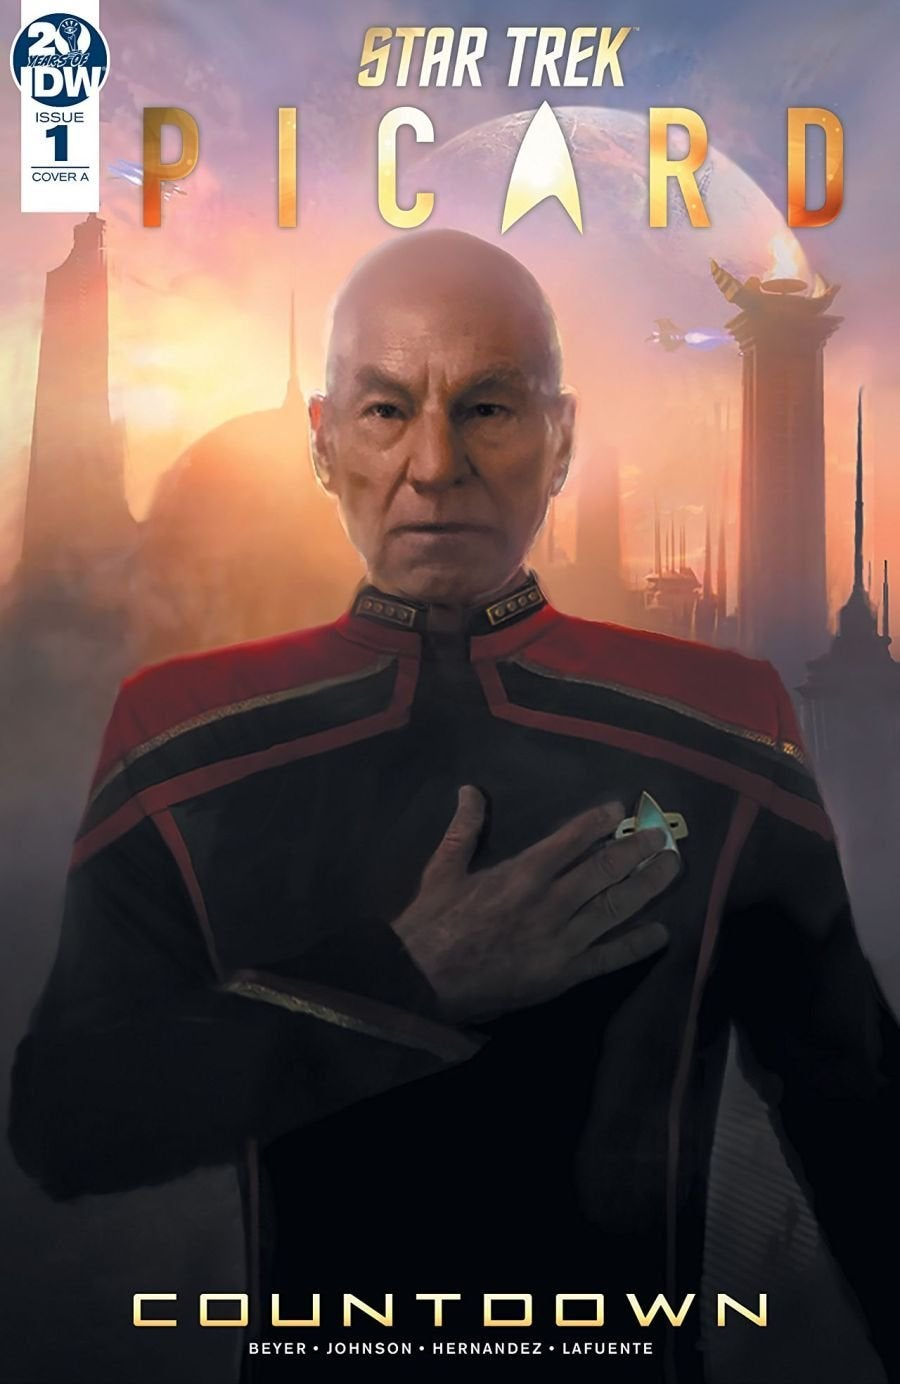 Star Trek Picard -- Countdown #1